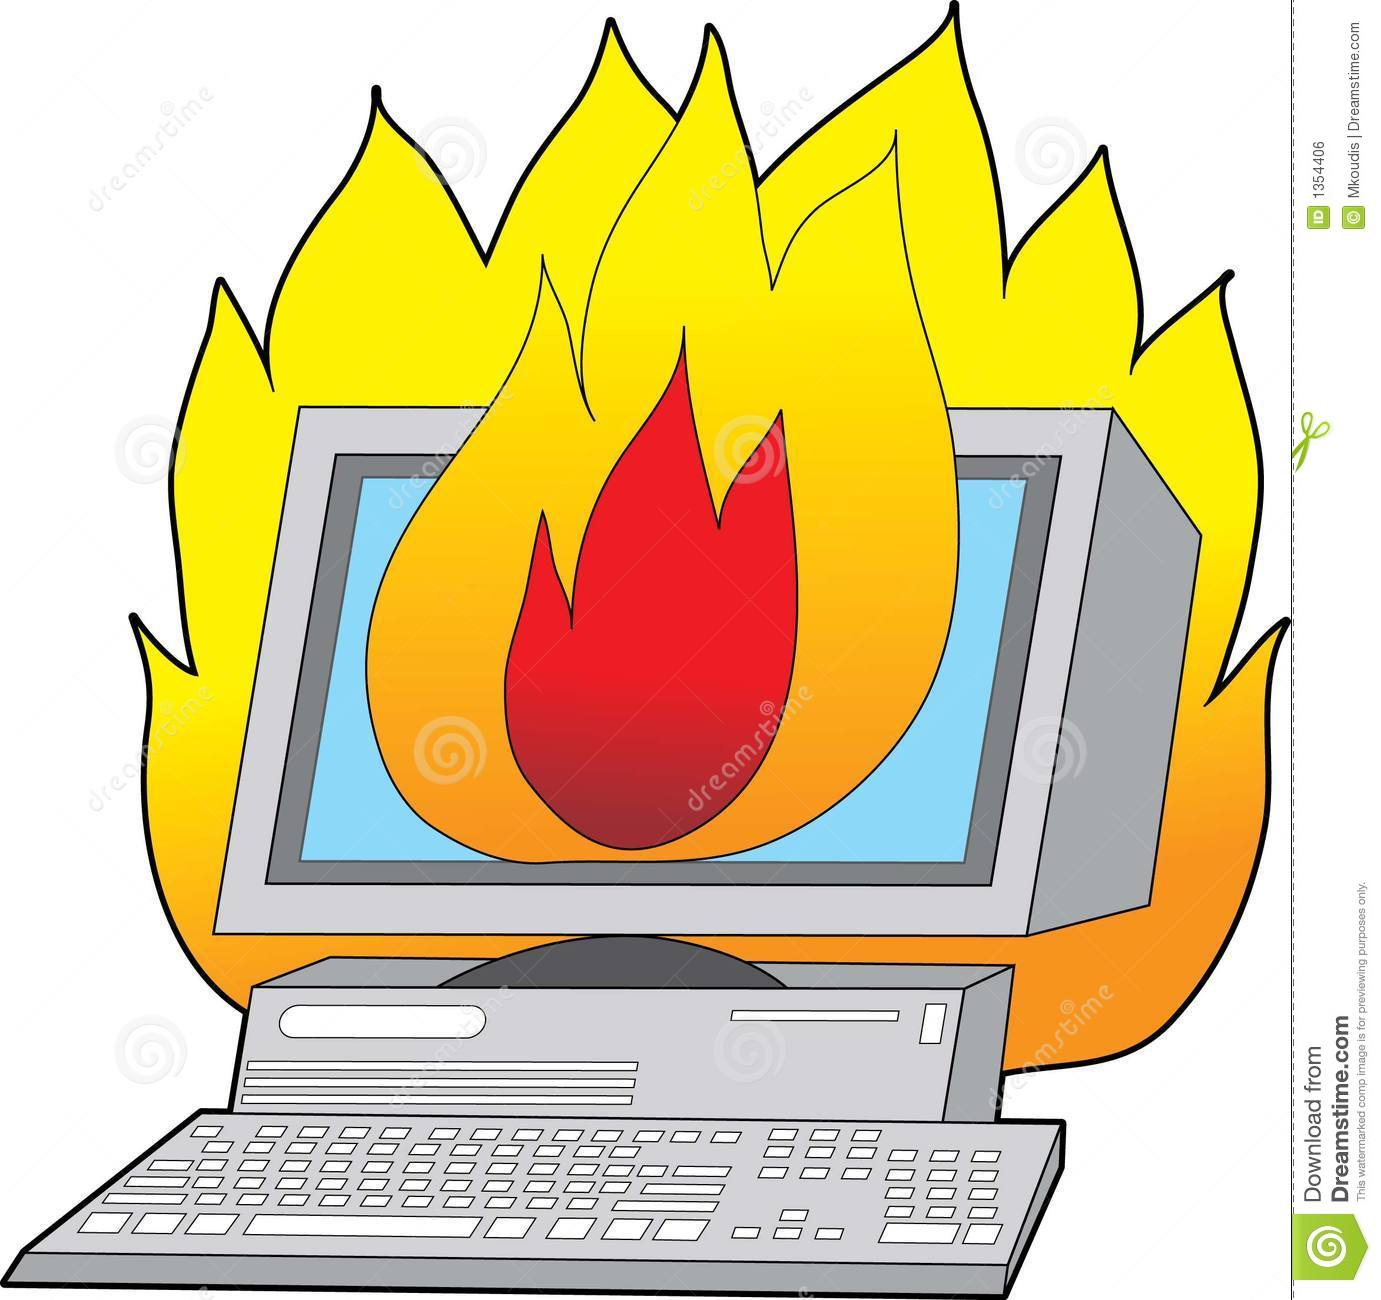 Computer On Fire Royalty Free Stock Image - Image: 1354406